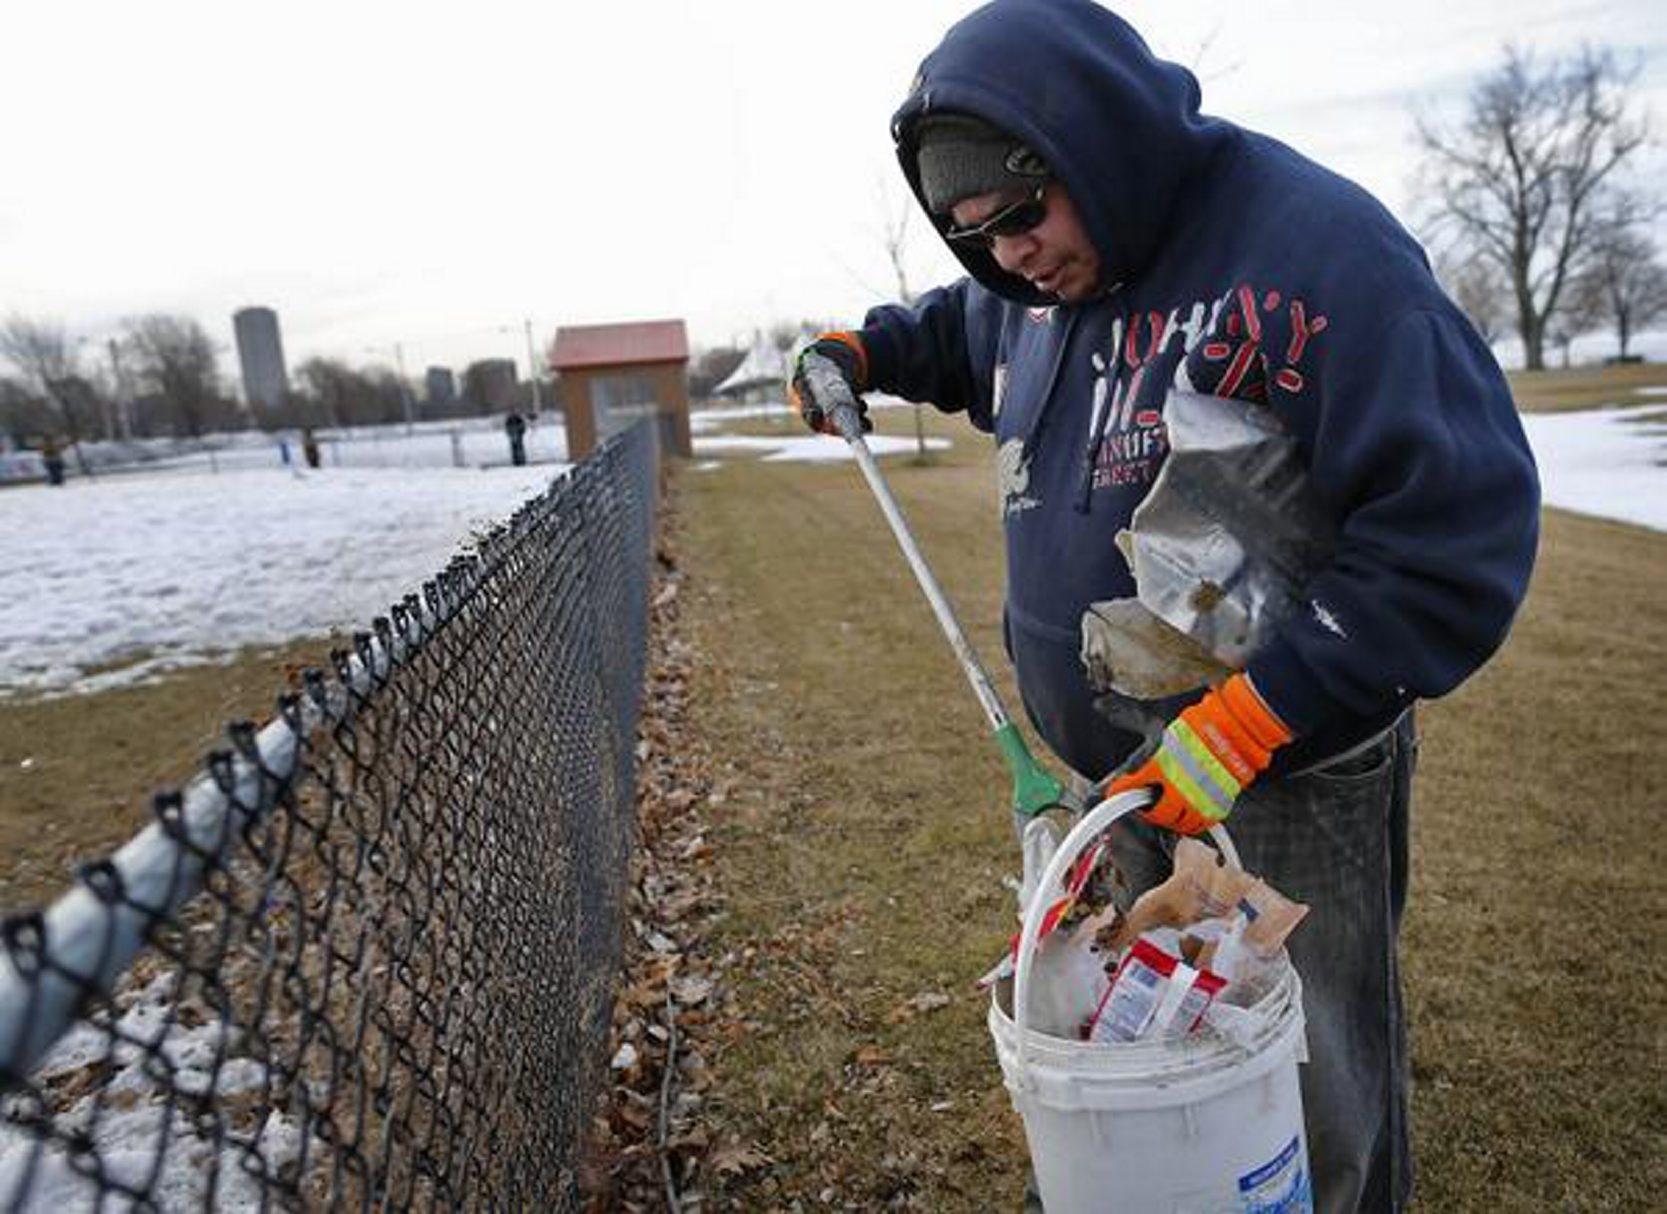 Parks worker Robert Williams picks up trash in LaSalle Park as the city begins annual spring cleanup on Wednesday, March 25, 2015.  (Derek Gee/Buffalo News